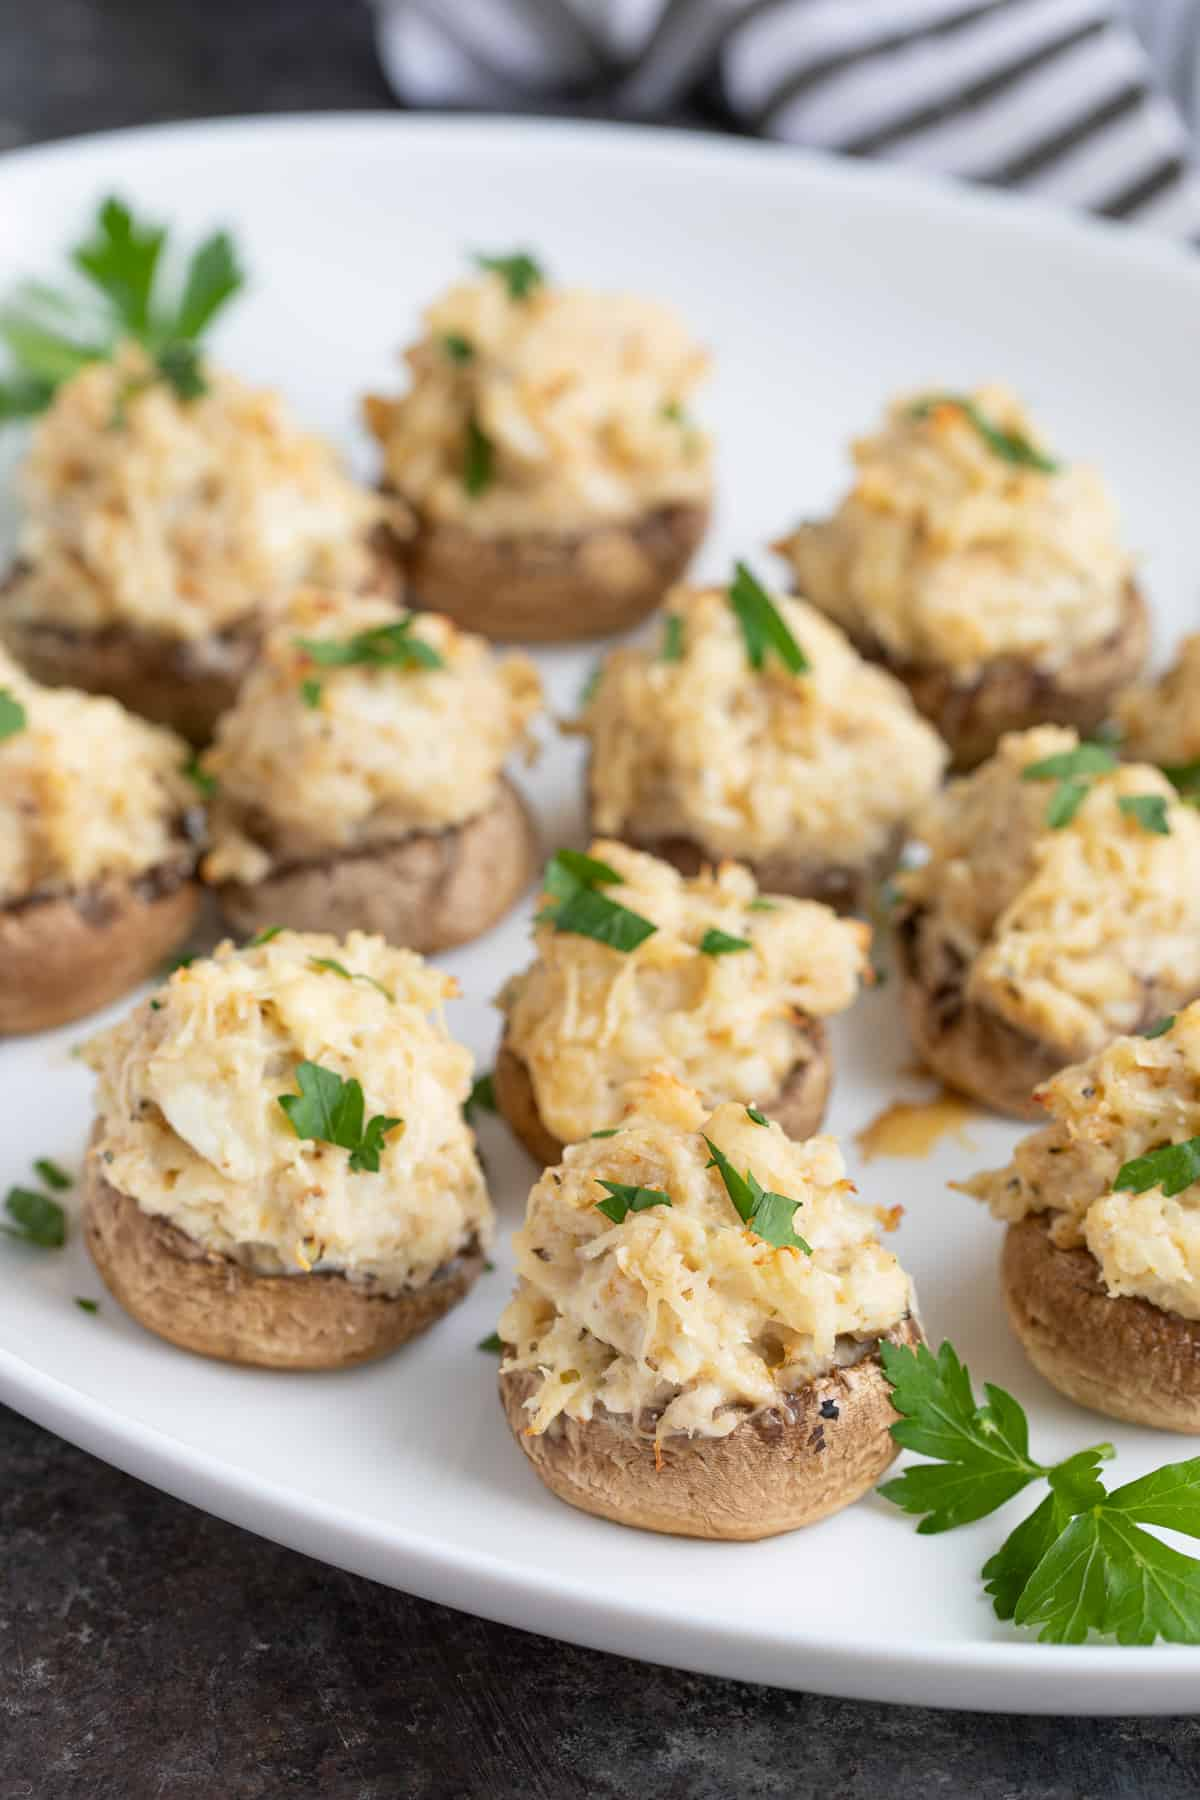 Closeup view of stuffed mushrooms on an oval white platter.